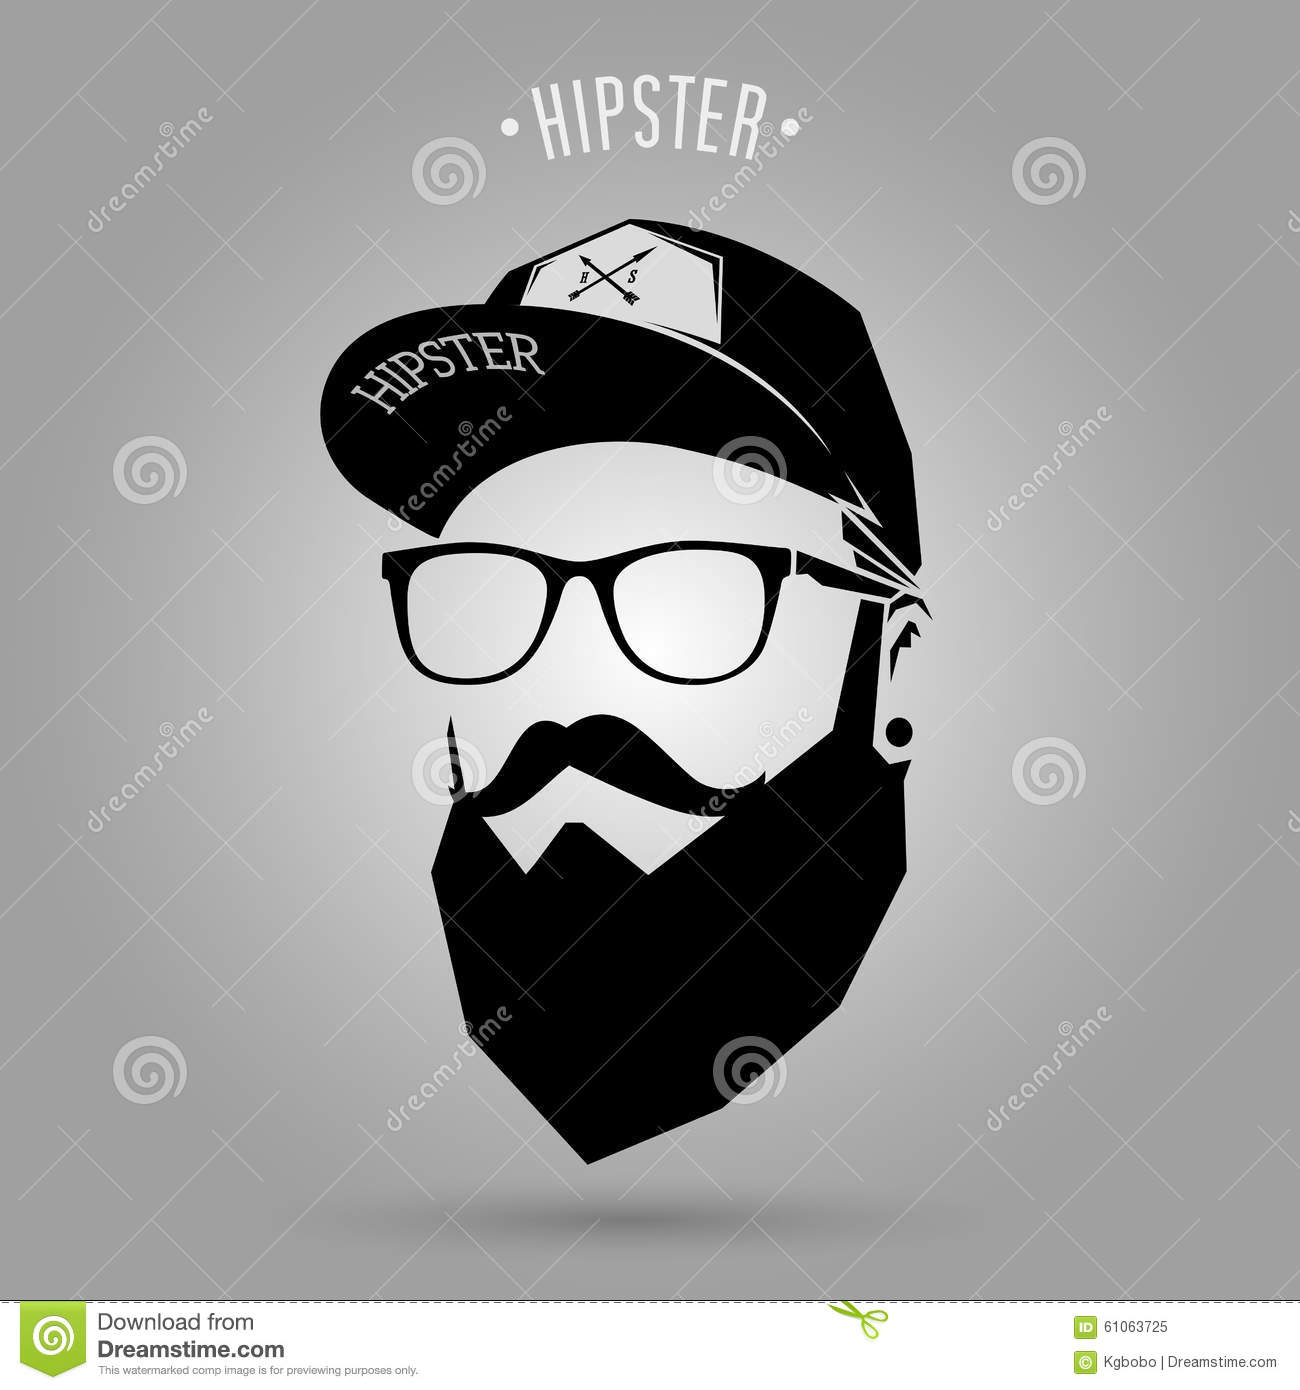 Stock Illustration Hipster Men Cap Man Face Gray Background Image61063725 on vintage settings